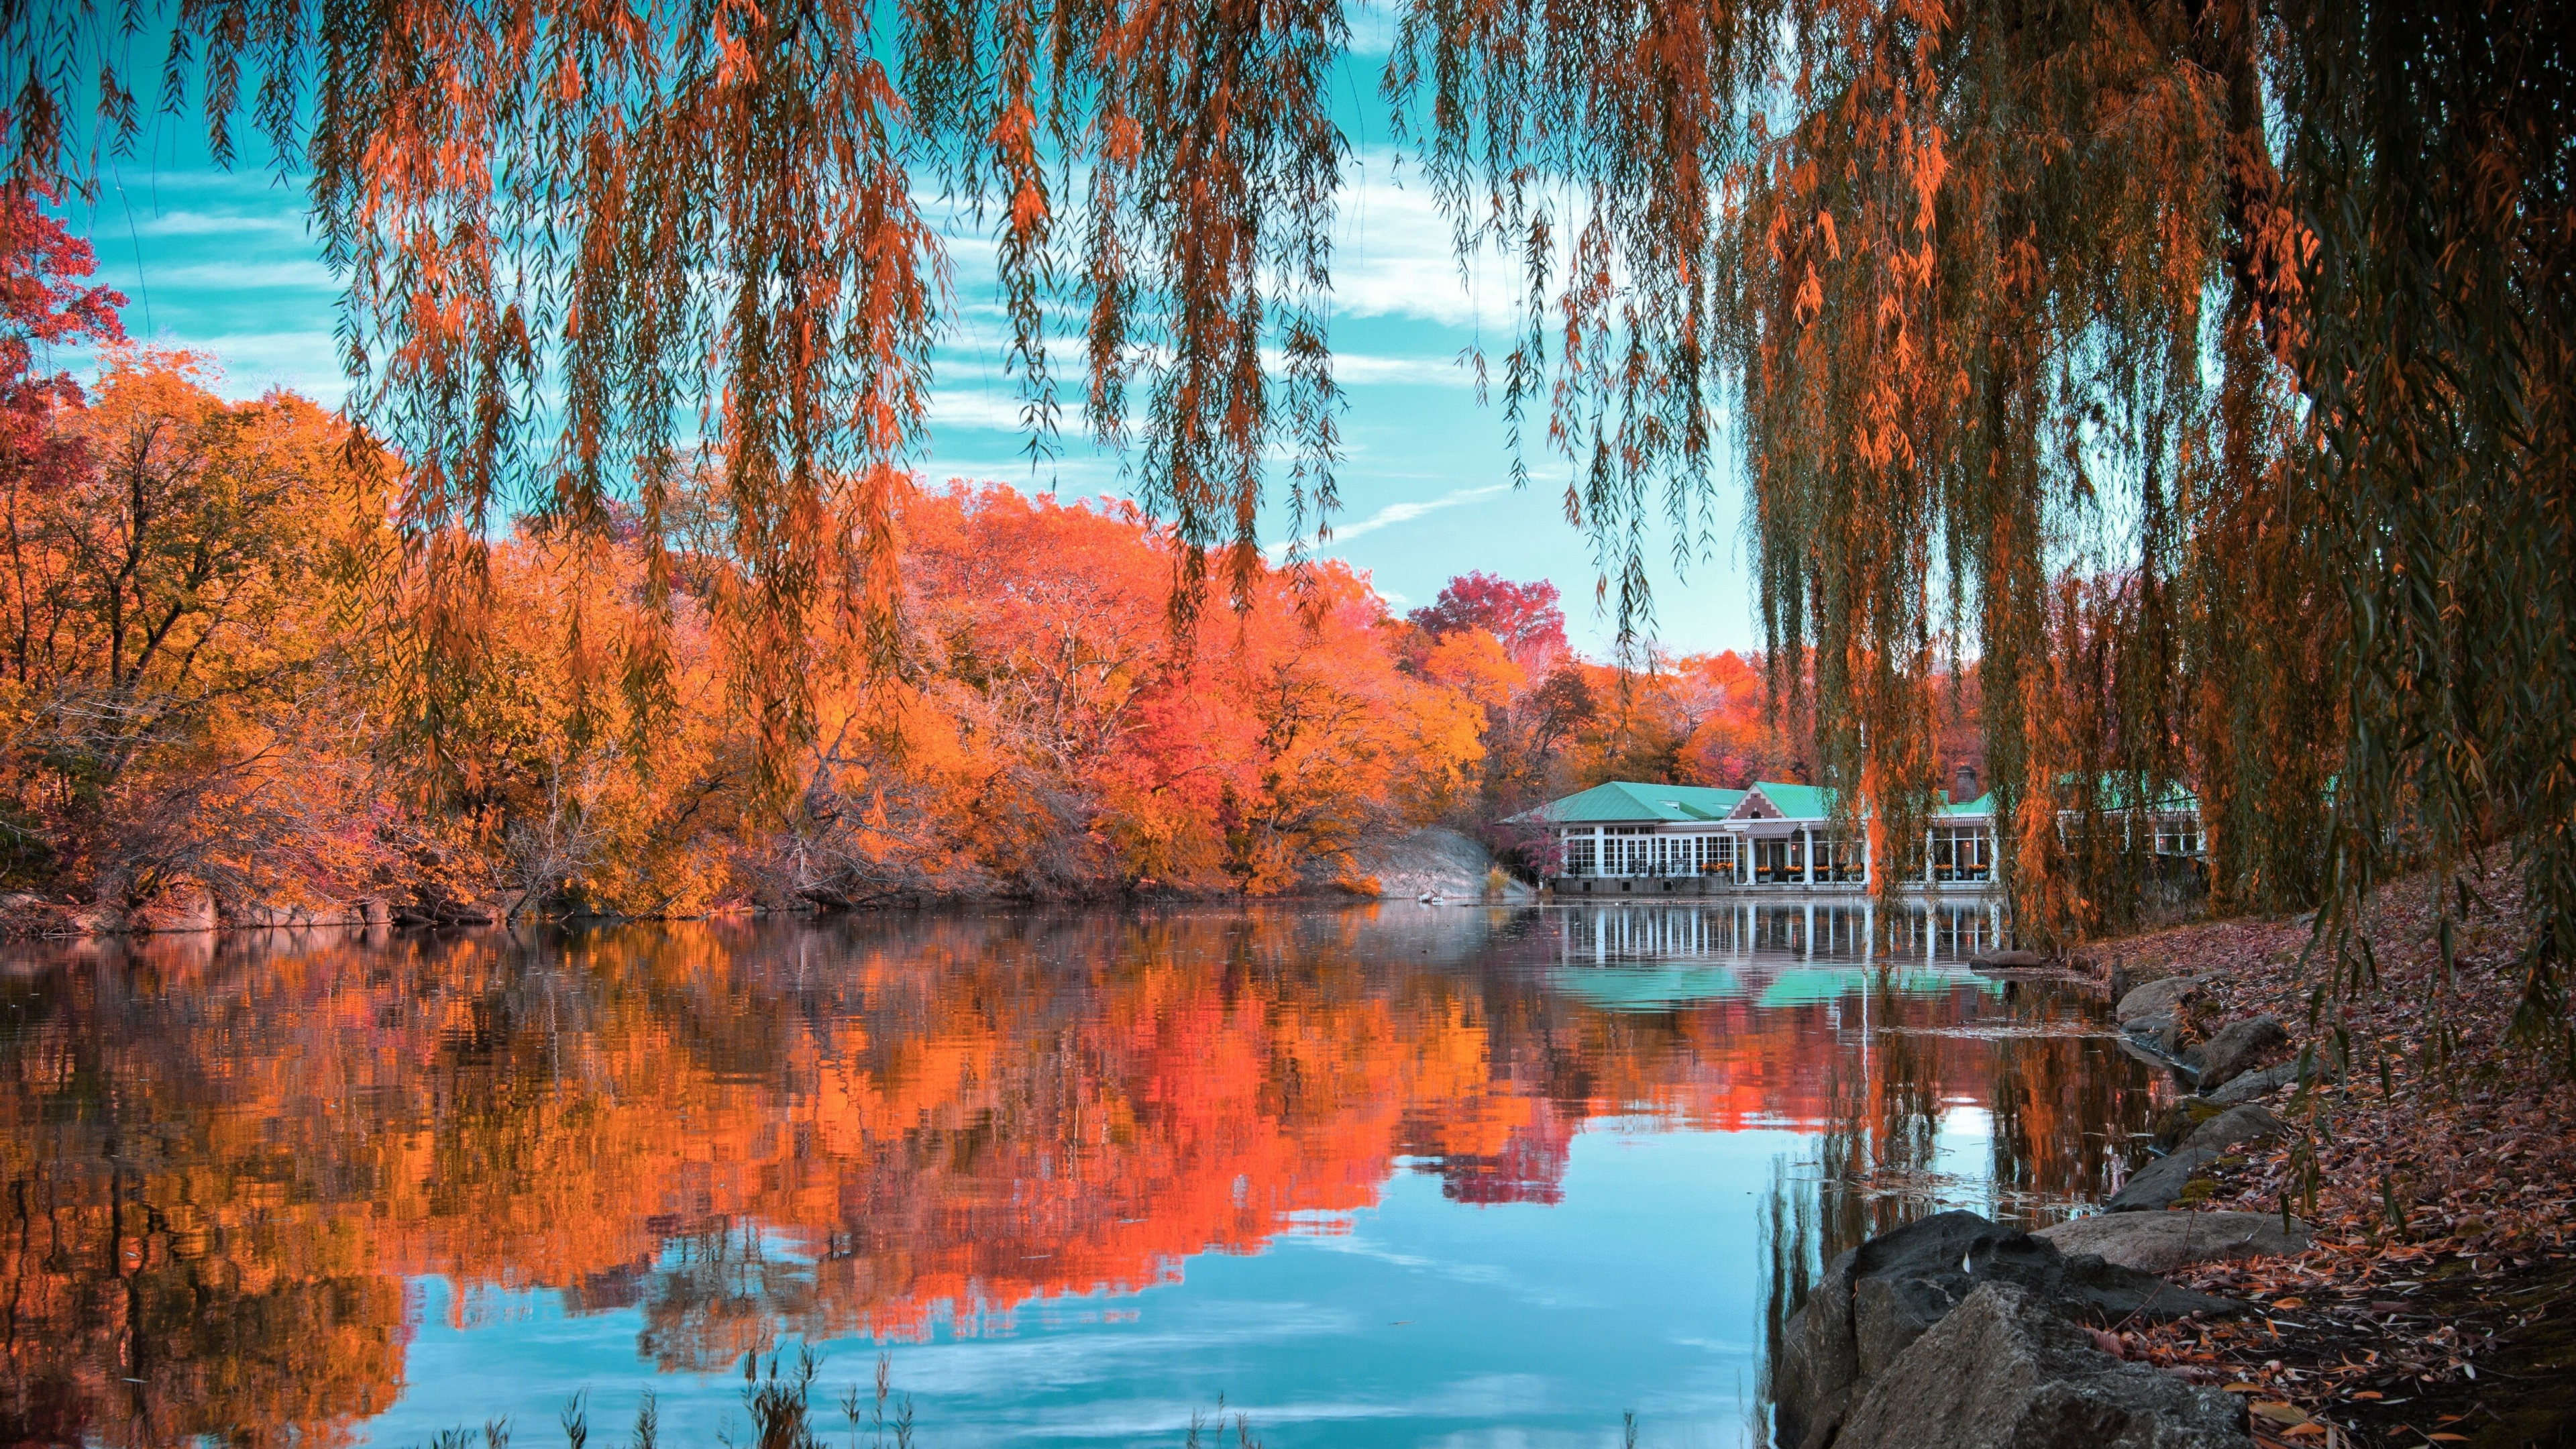 Central Park In Autumn 4k Ultra Hd Wallpaper Background Image